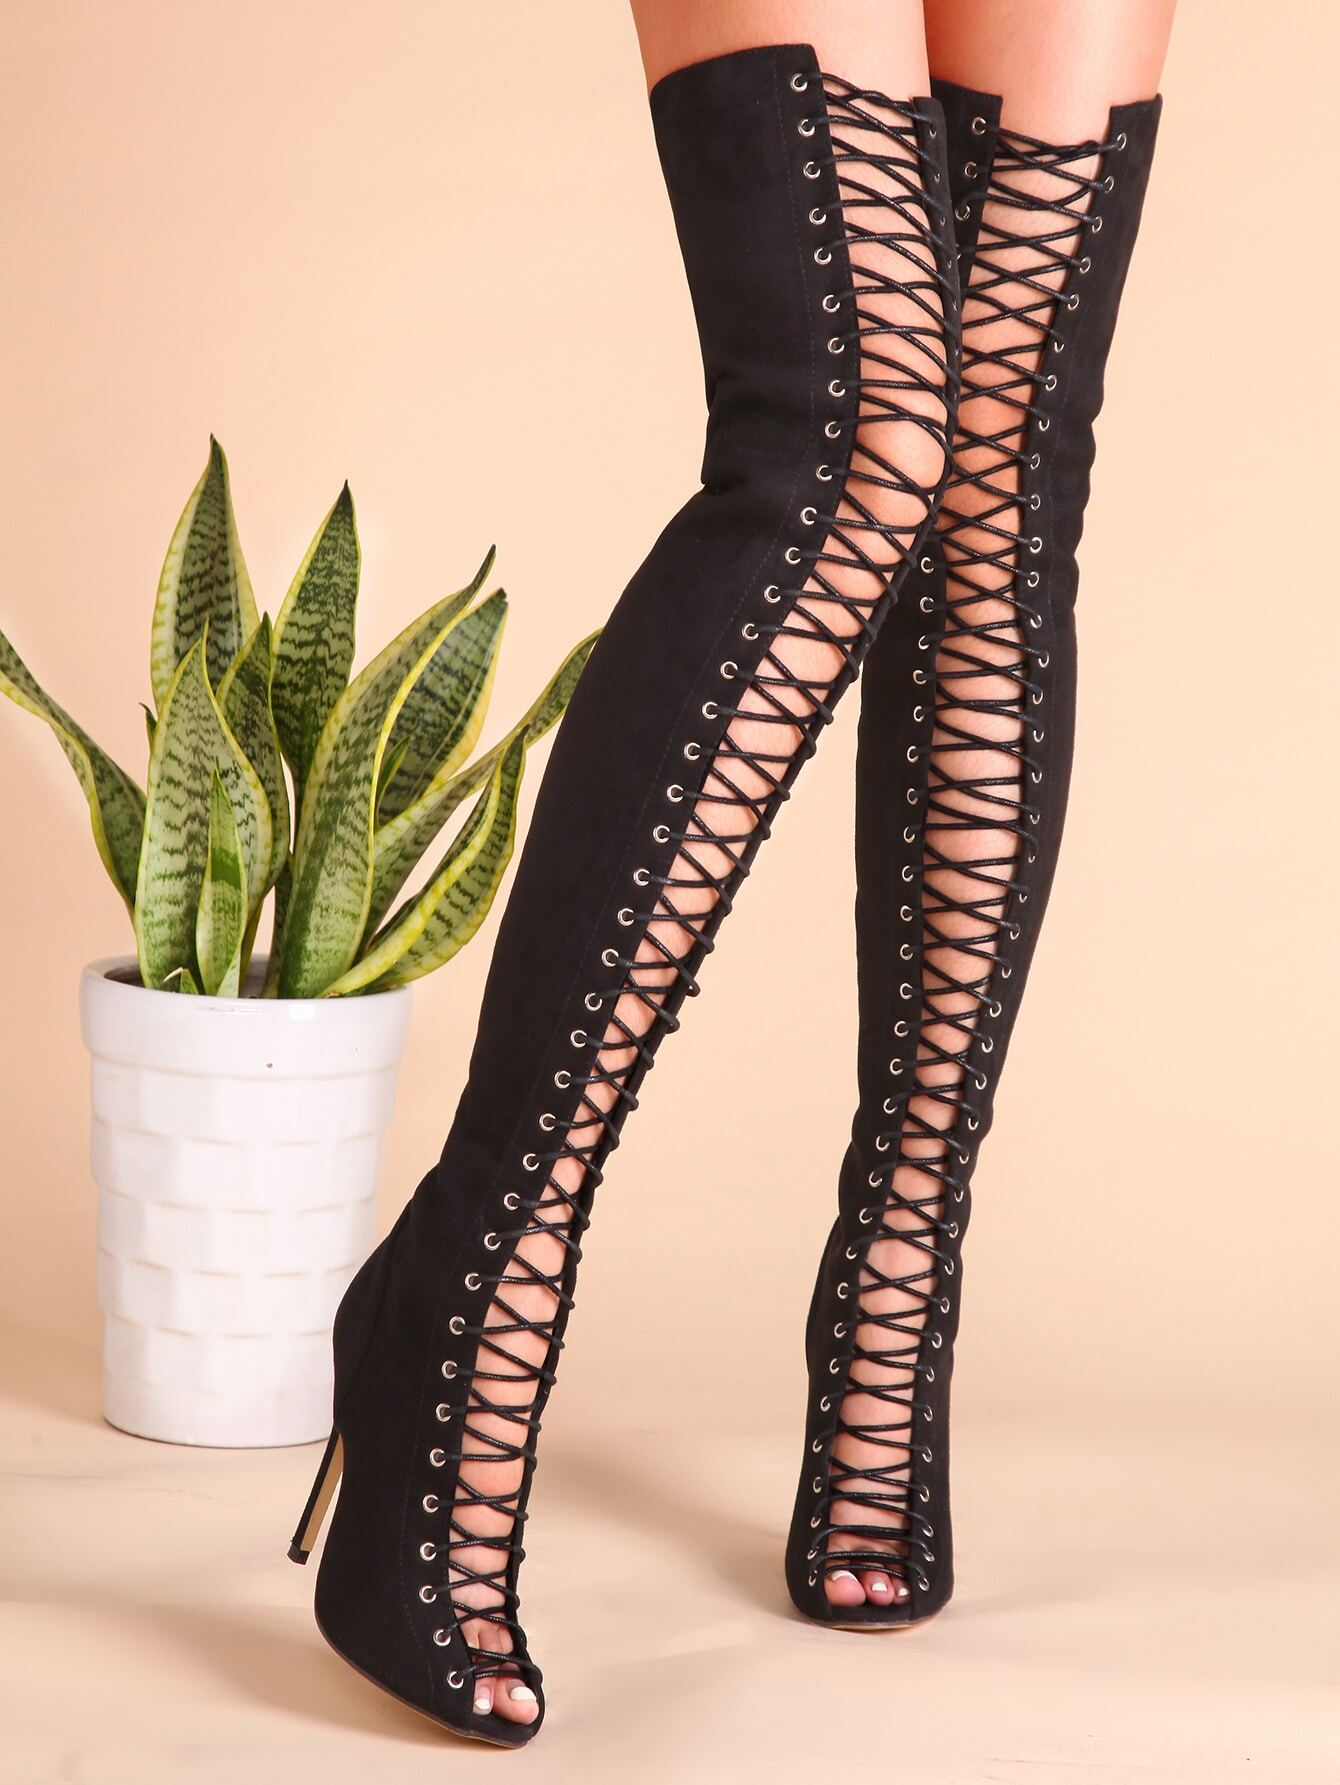 3dda3fbaa55 Black Sexy Criss Cross Lace Up Suede Thigh High Boots EmmaCloth ...